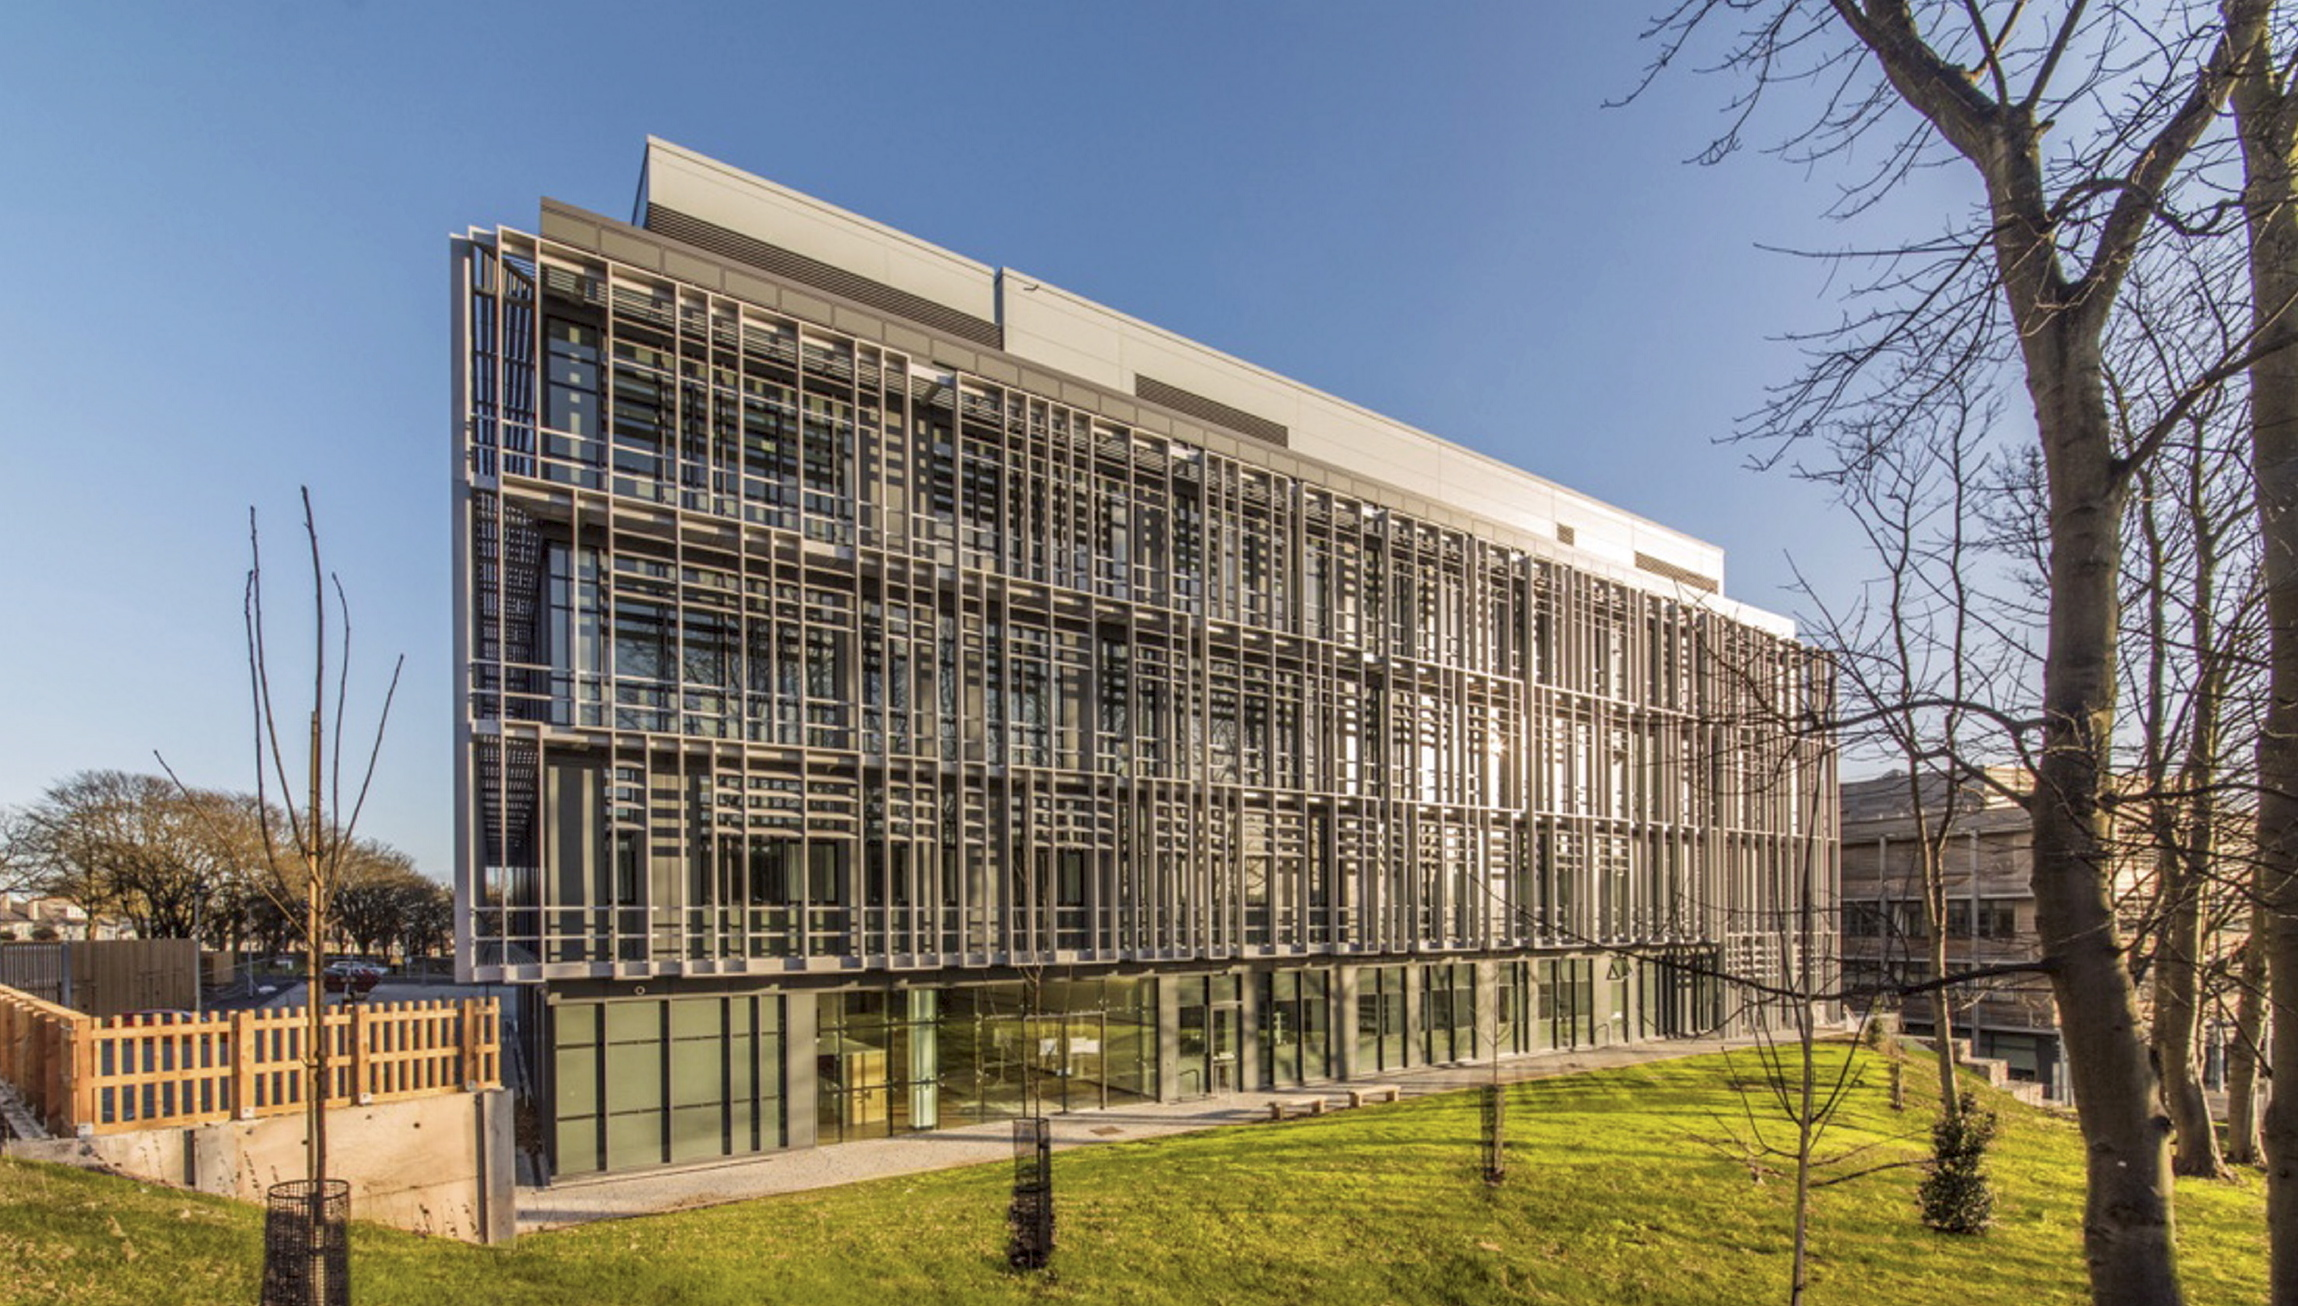 An artist's impression of how the University of Aberdeen's state-of-the-art nutrition facility looks.